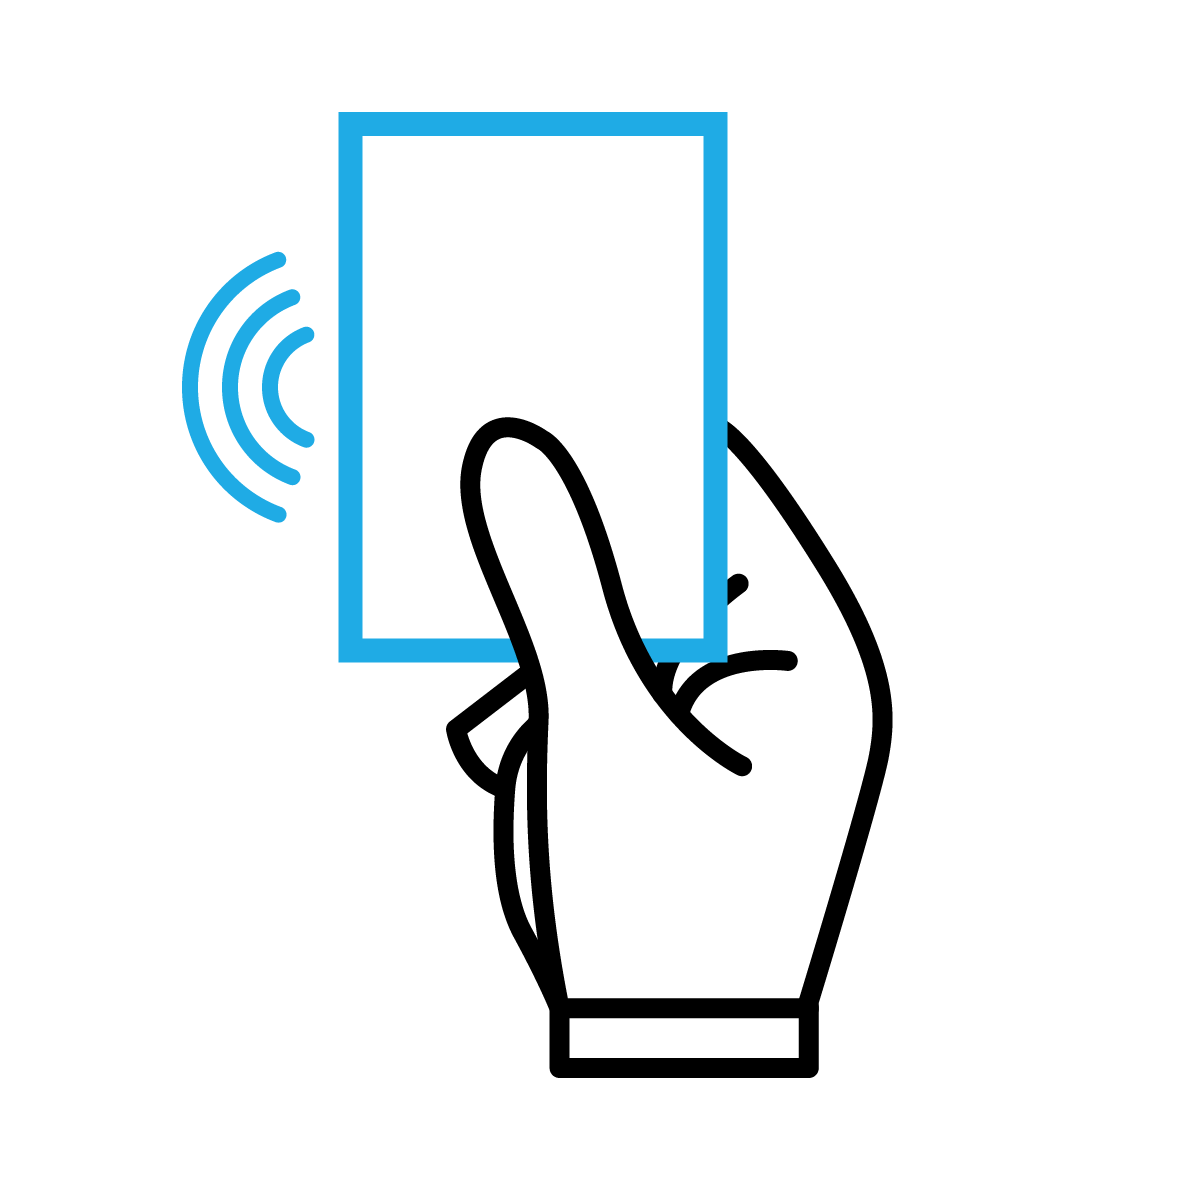 Step 2: Thanks to the RFID chip, the Welcome Card can be carried by its owner to be utilized for community activities and publicly available services, where its internal programming makes it unique and safe to use.